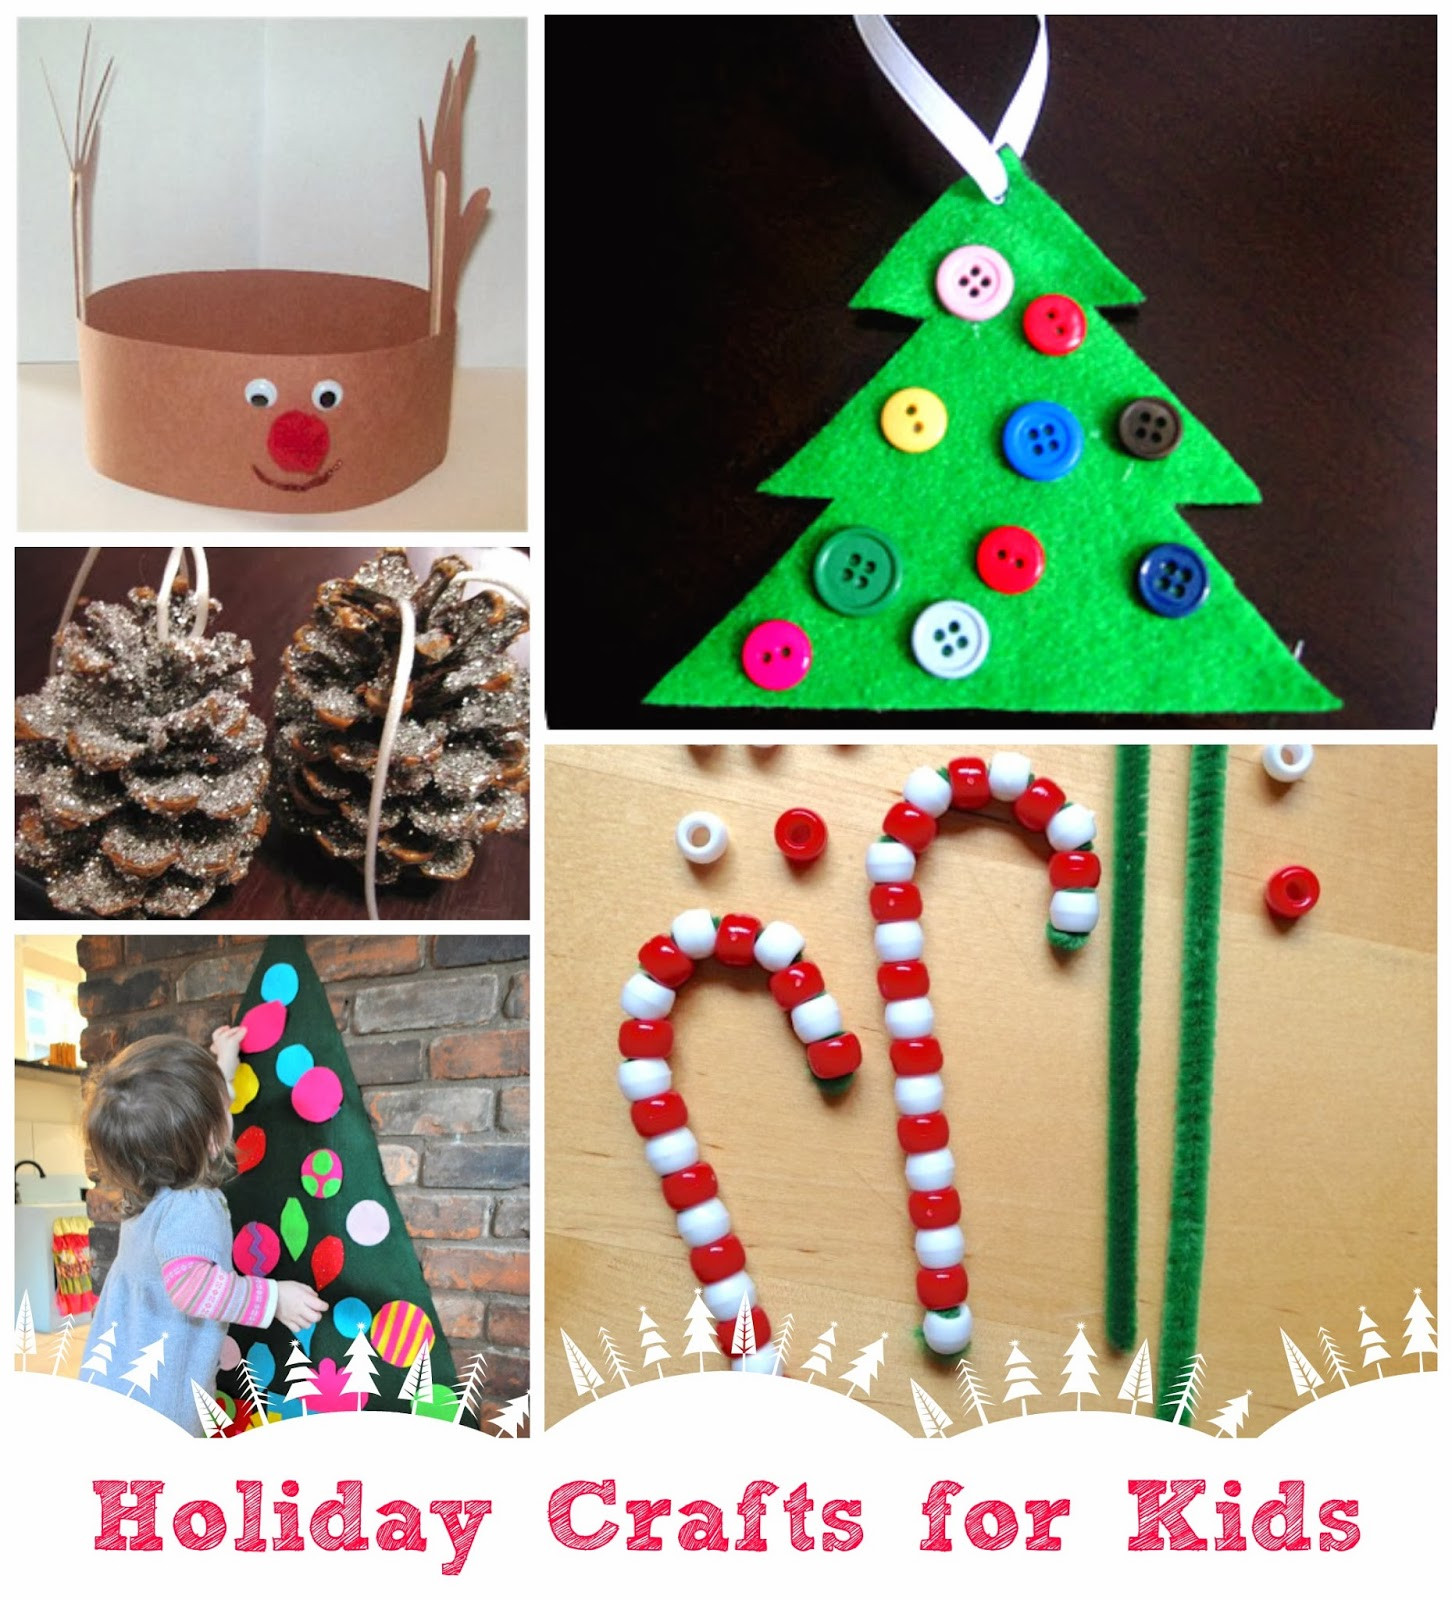 Best ideas about Holiday Craft Idea For Kids . Save or Pin Parent Talk Matters Blog Holiday Craft Ideas for Kids Now.